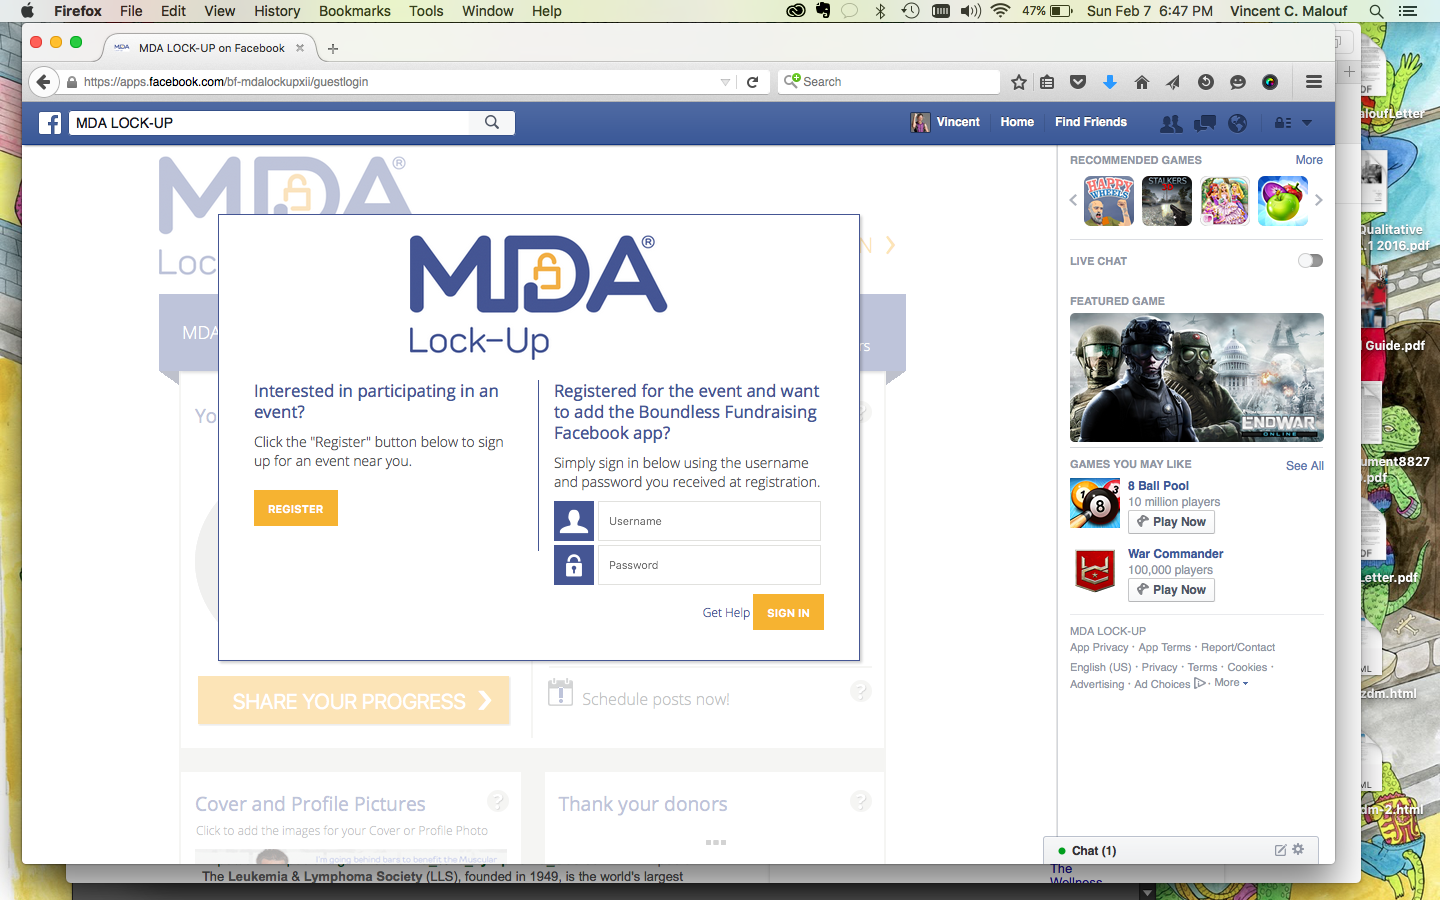 A screenshot of the Boundless Fundraising Facebook app for Muscular Dystrophy Association